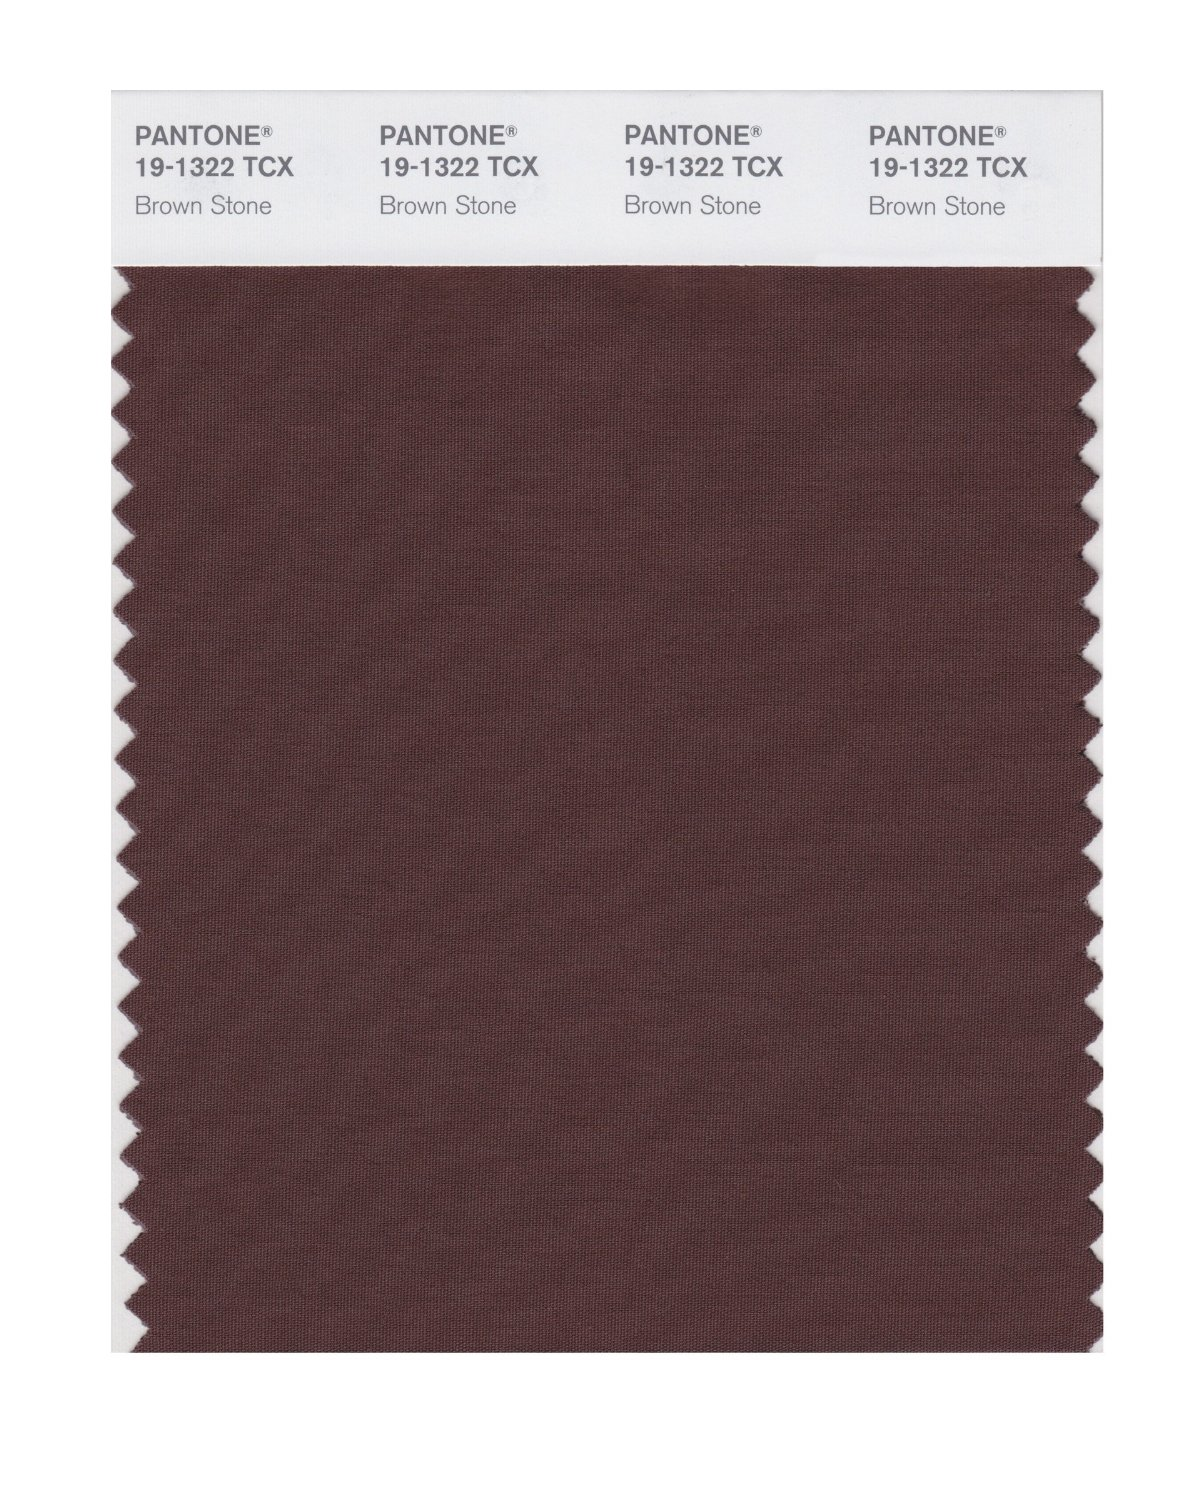 Pantone Smart Swatch 19-1322 Brown Stone